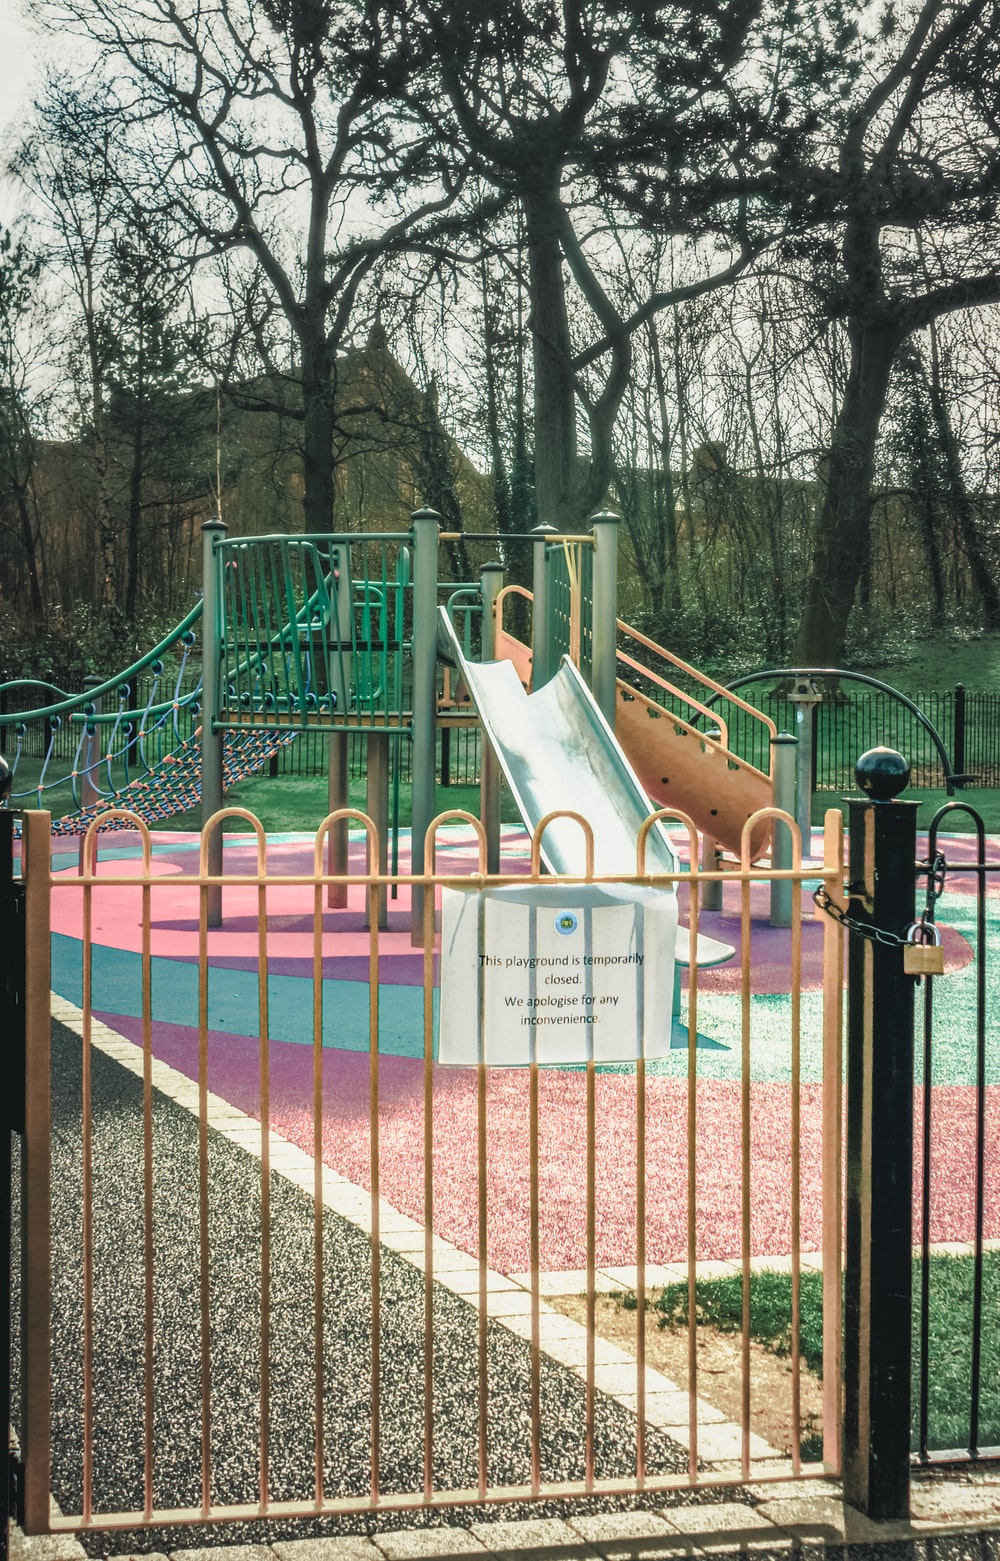 pink and white playground during daytime